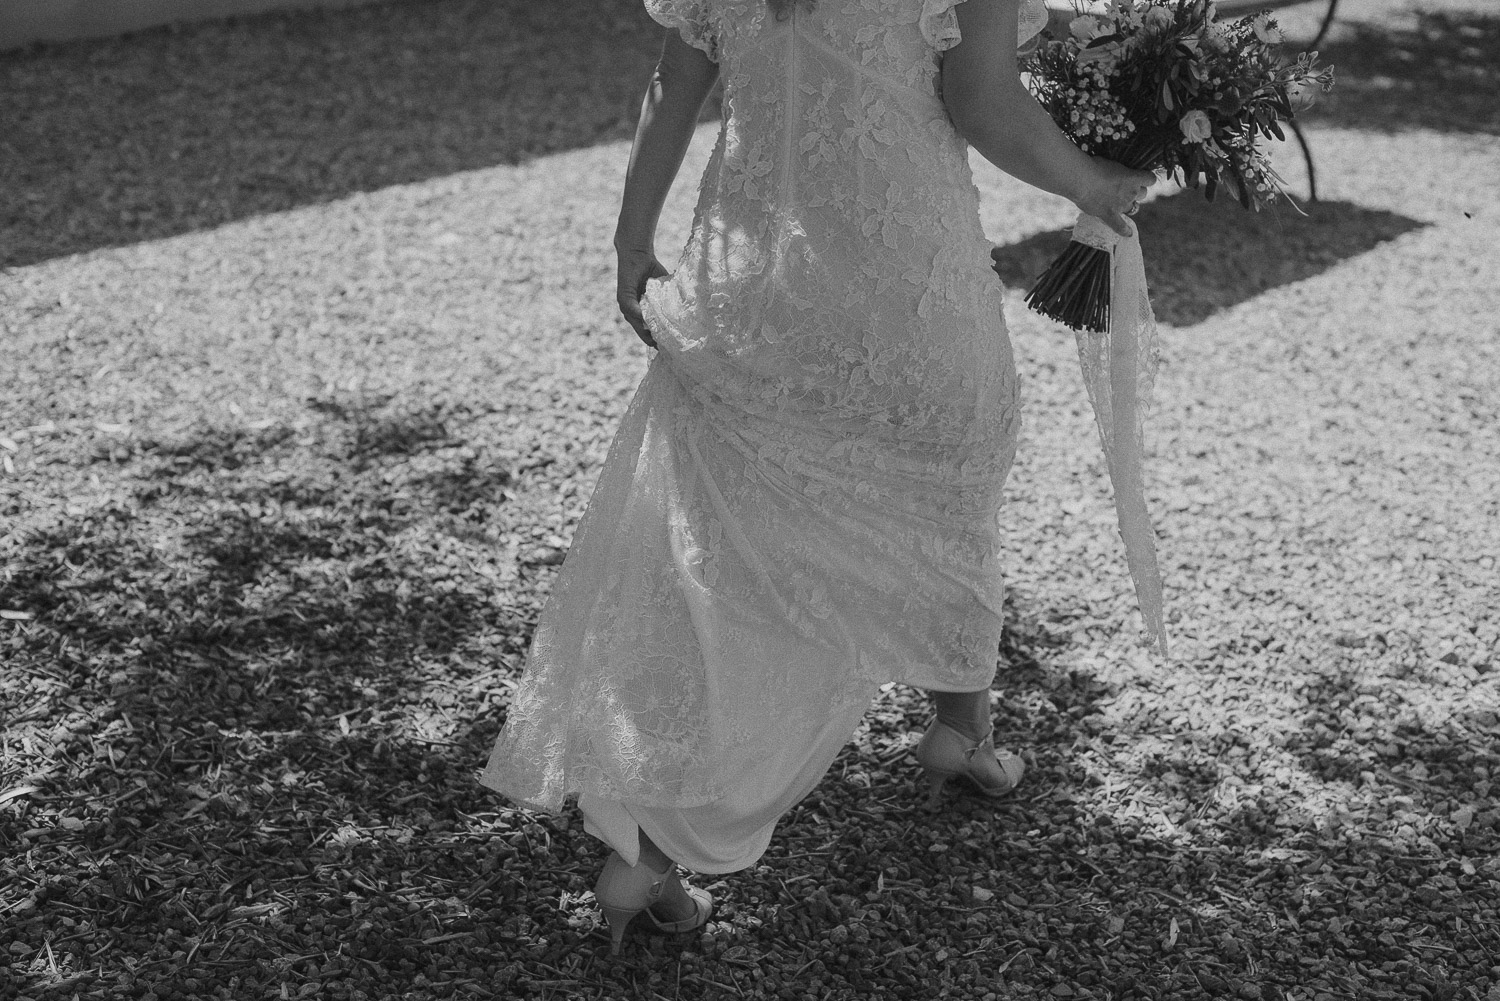 chateau_canet_carcassonne_wedding_katy_webb_photography_france_UK85